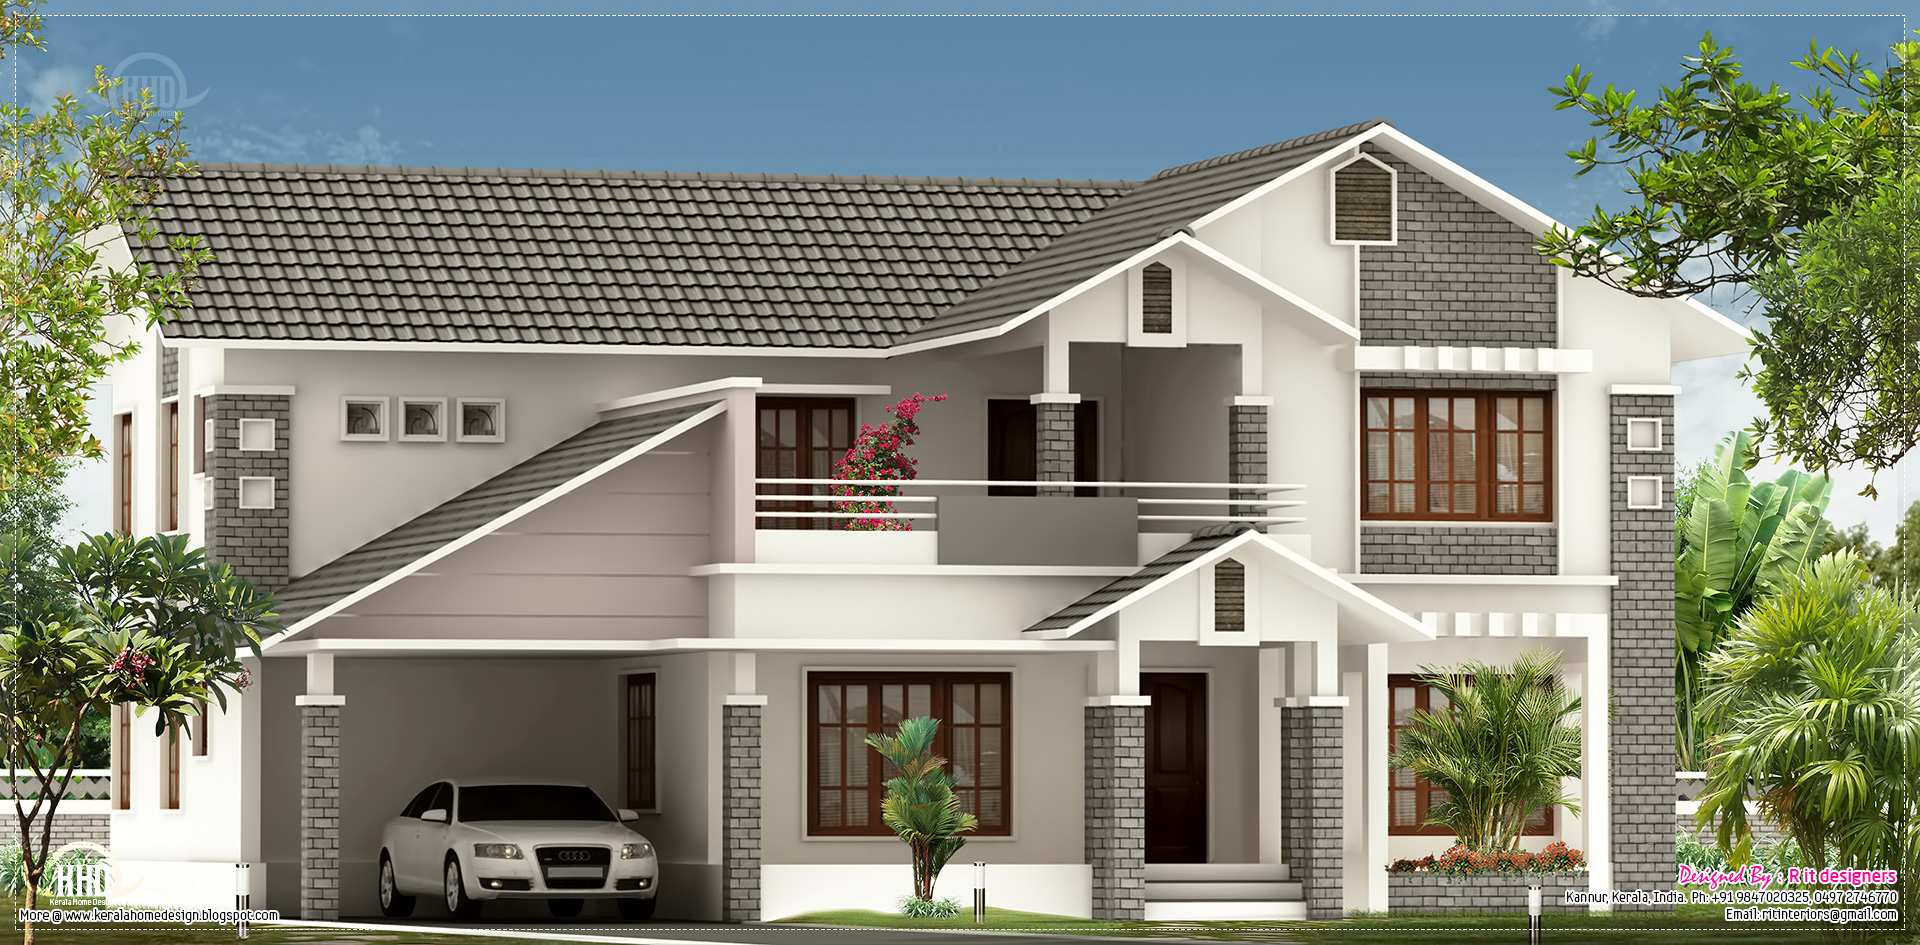 Villa elevation design in 2900 kerala home for Best villa design